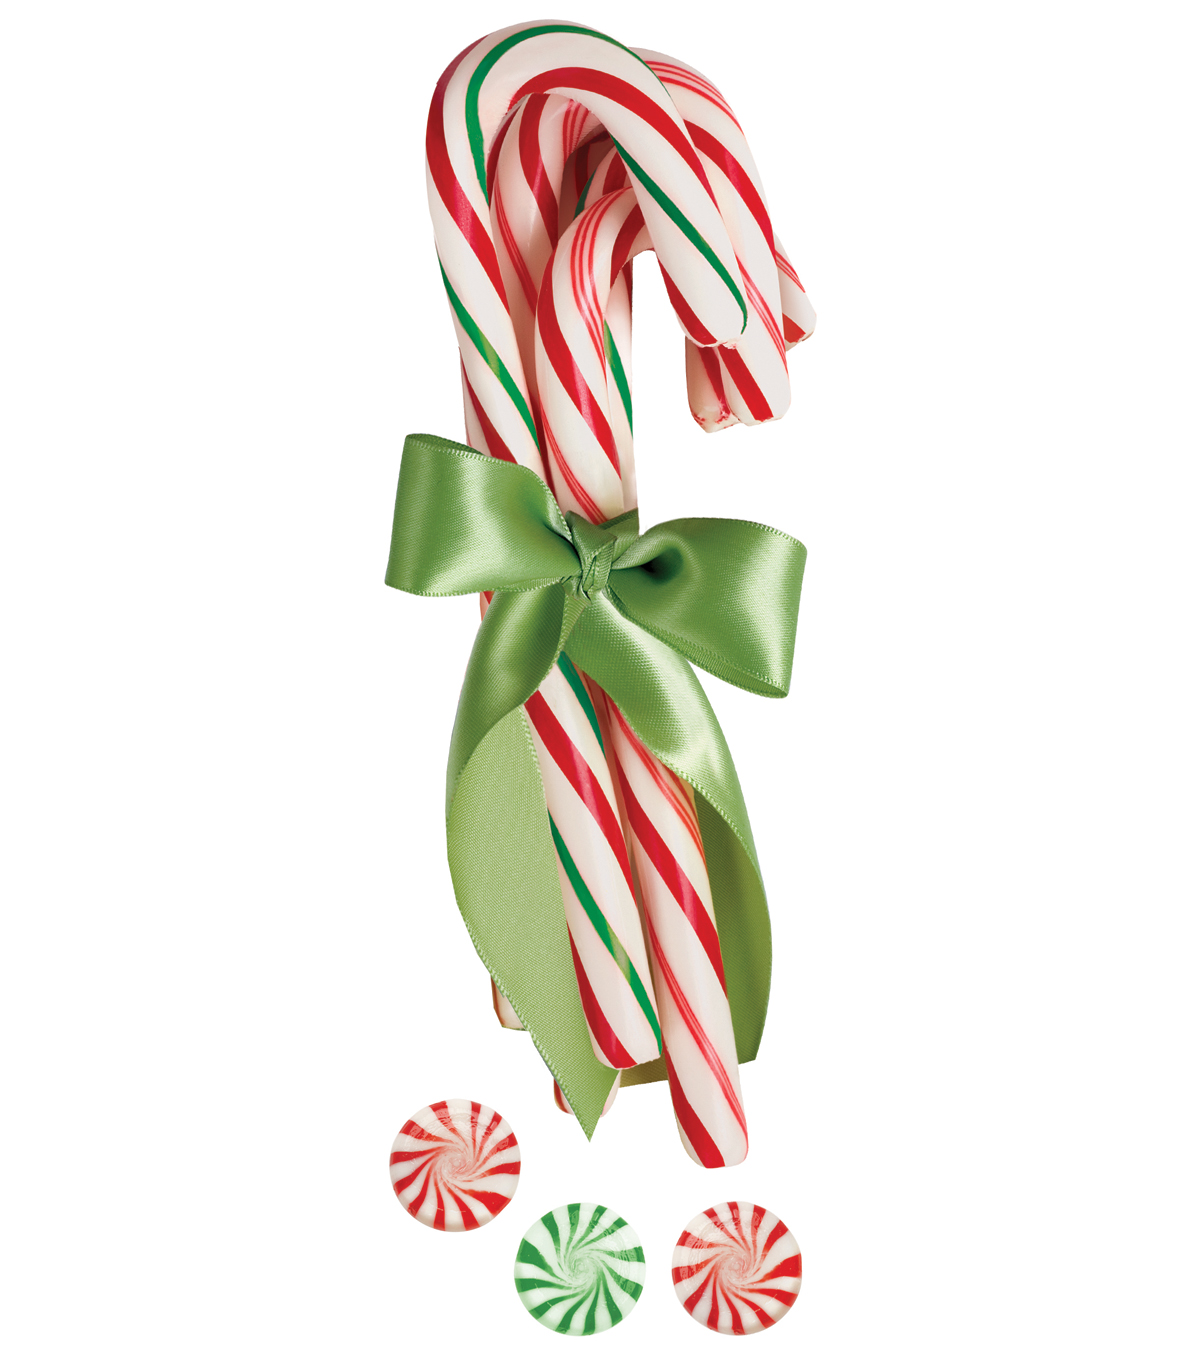 Candy Cane 3D Sticker